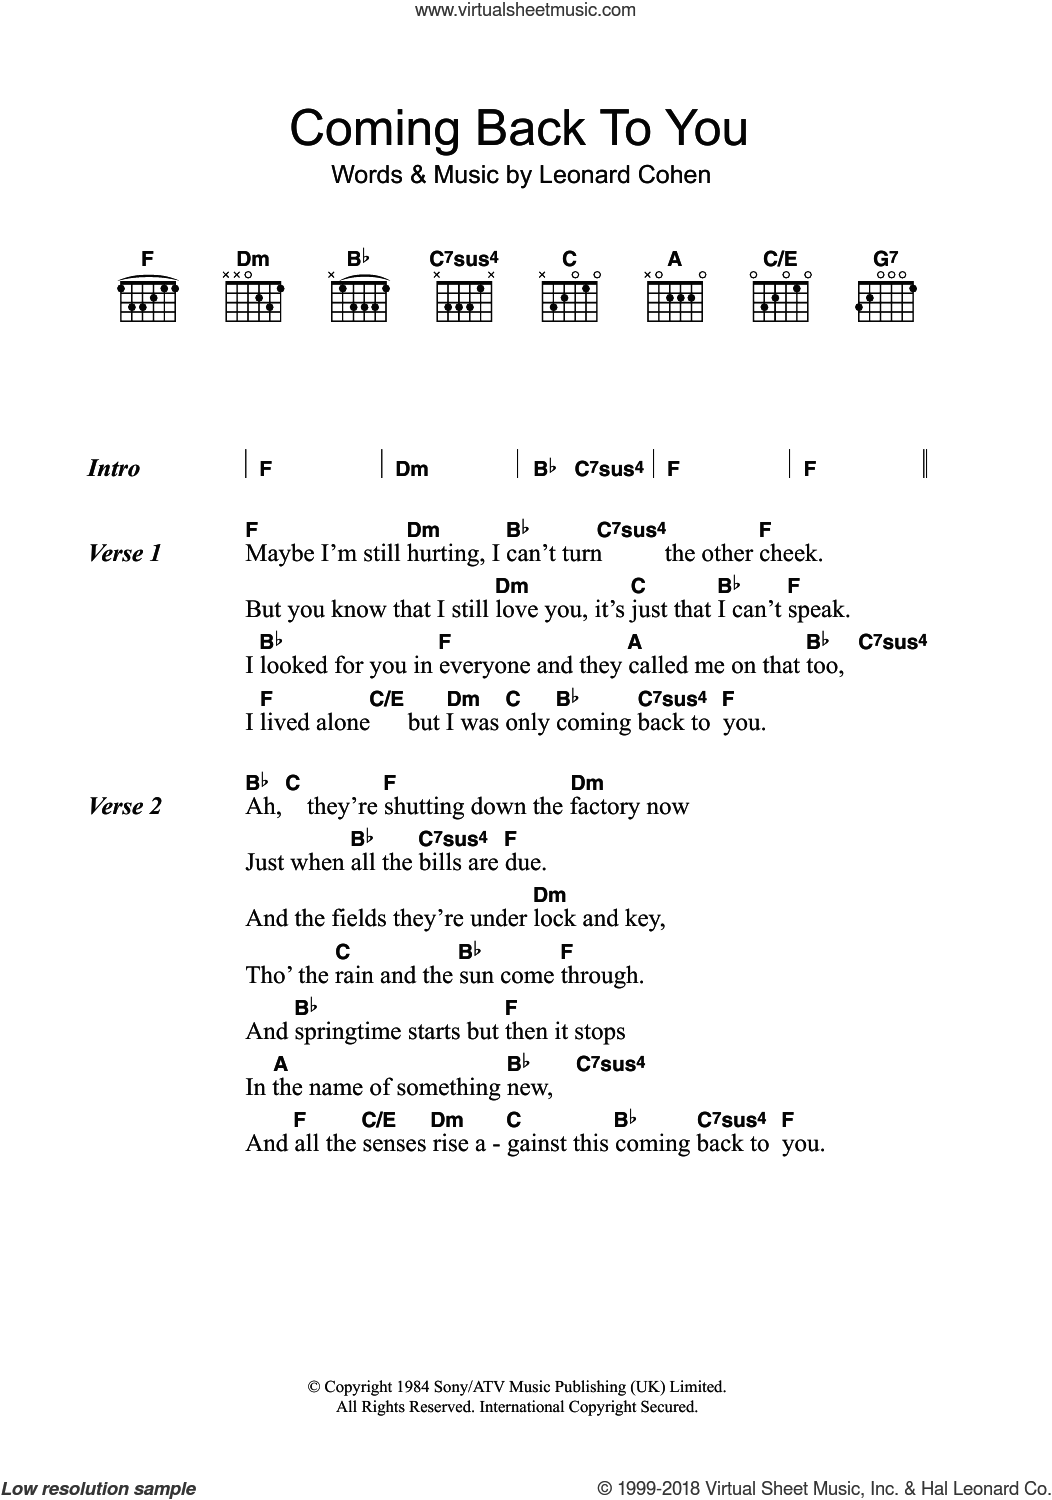 Coming Back To You sheet music for guitar (chords) by Leonard Cohen, intermediate. Score Image Preview.